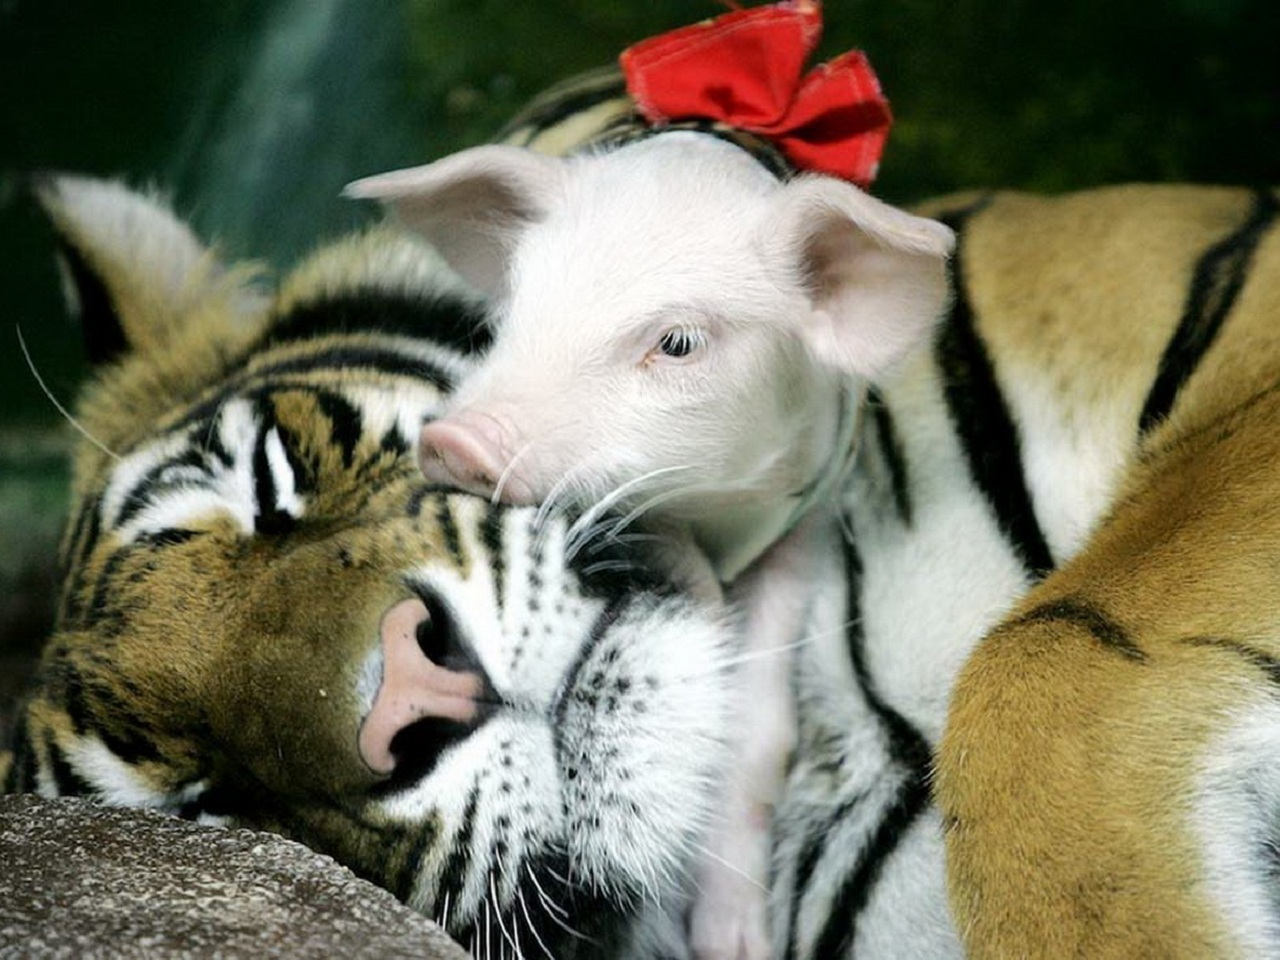 44776 download wallpaper Animals, Tigers, Pigs screensavers and pictures for free